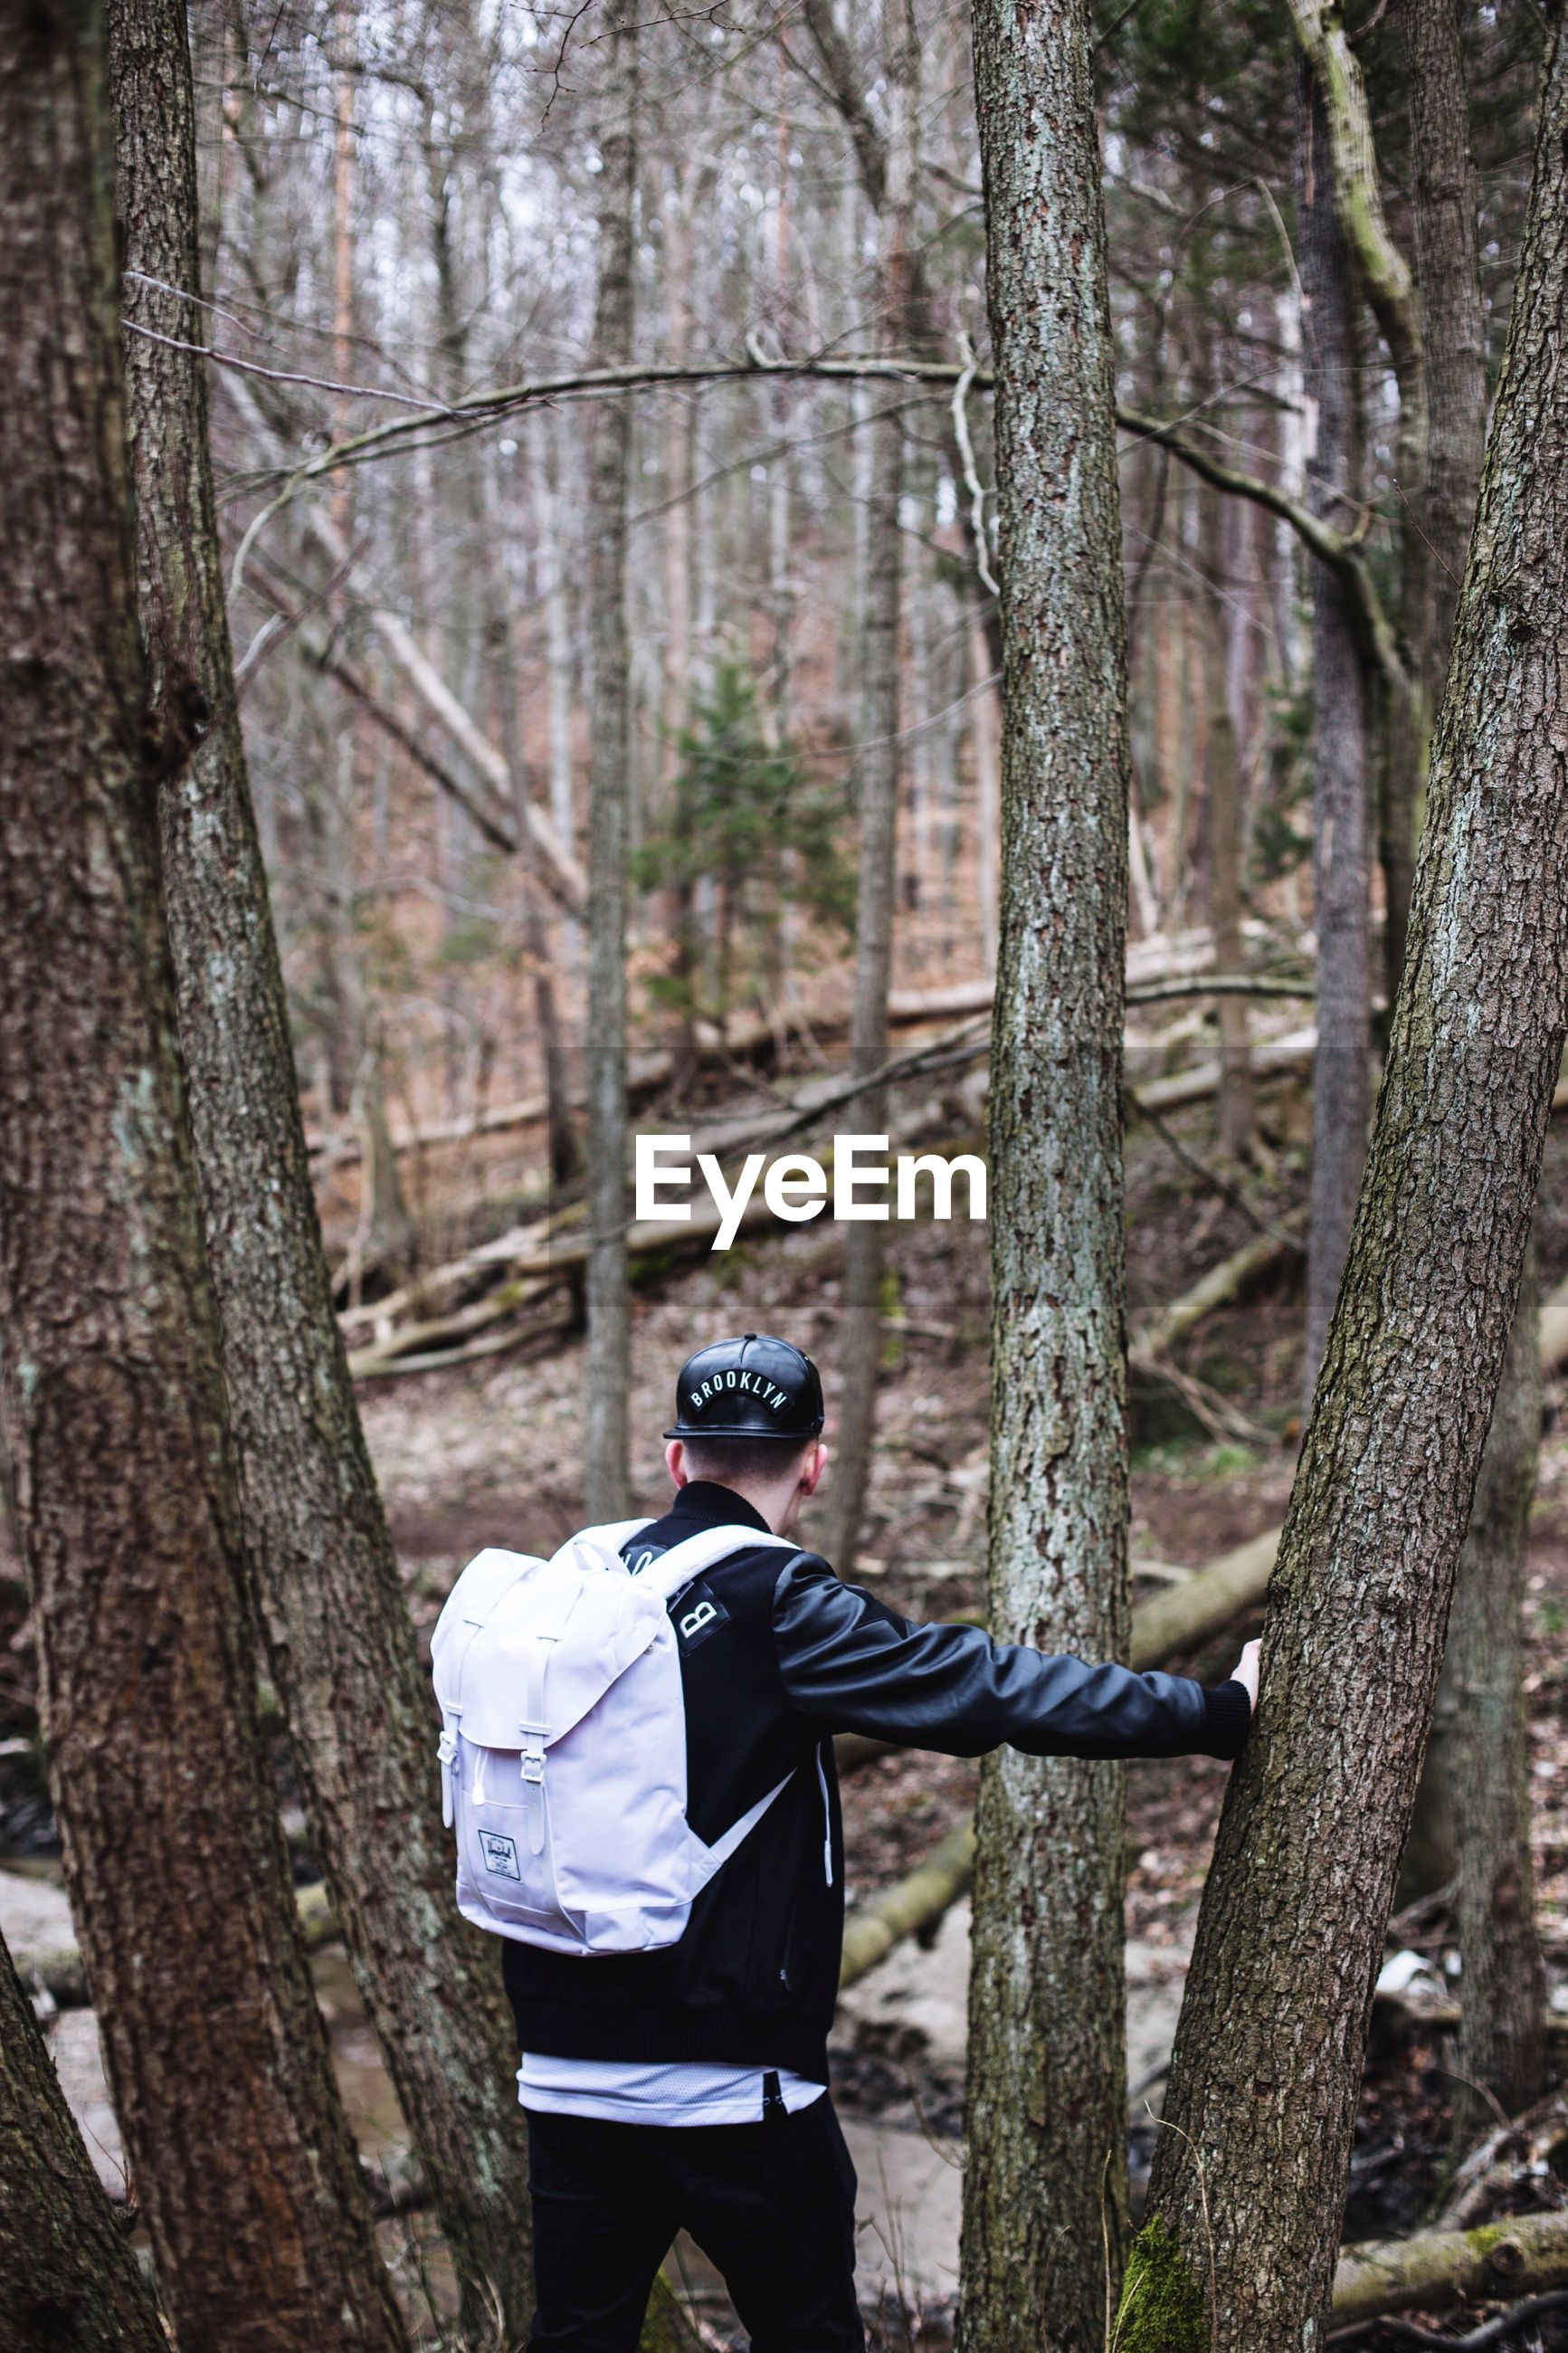 tree, tree trunk, forest, lifestyles, leisure activity, rear view, men, branch, full length, woodland, casual clothing, bare tree, nature, day, holding, standing, transportation, wood - material